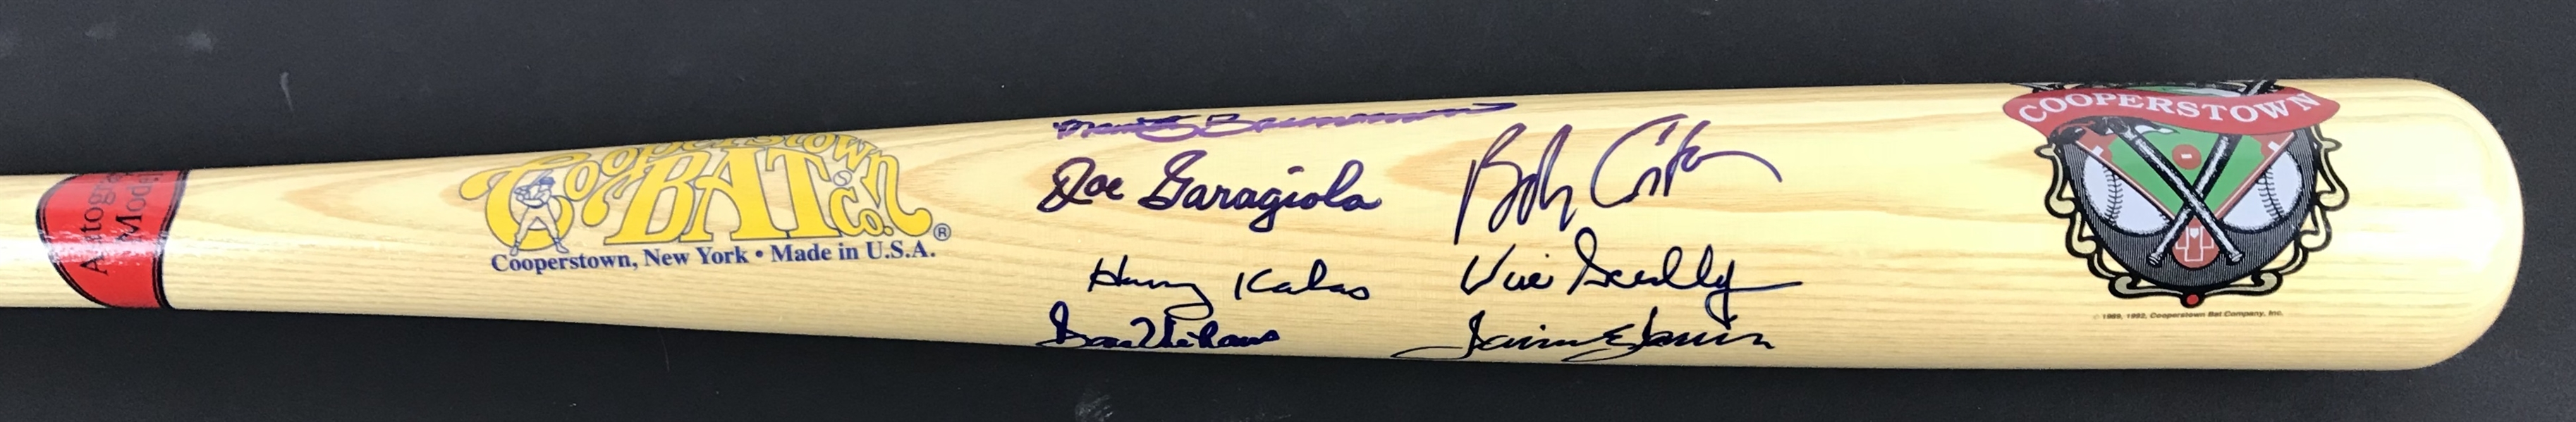 Legendary MLB Announcers Signed Cooperstown Bat w/Scully, Kalas, Costas, etc. (Beckett/BAS Guaranteed)